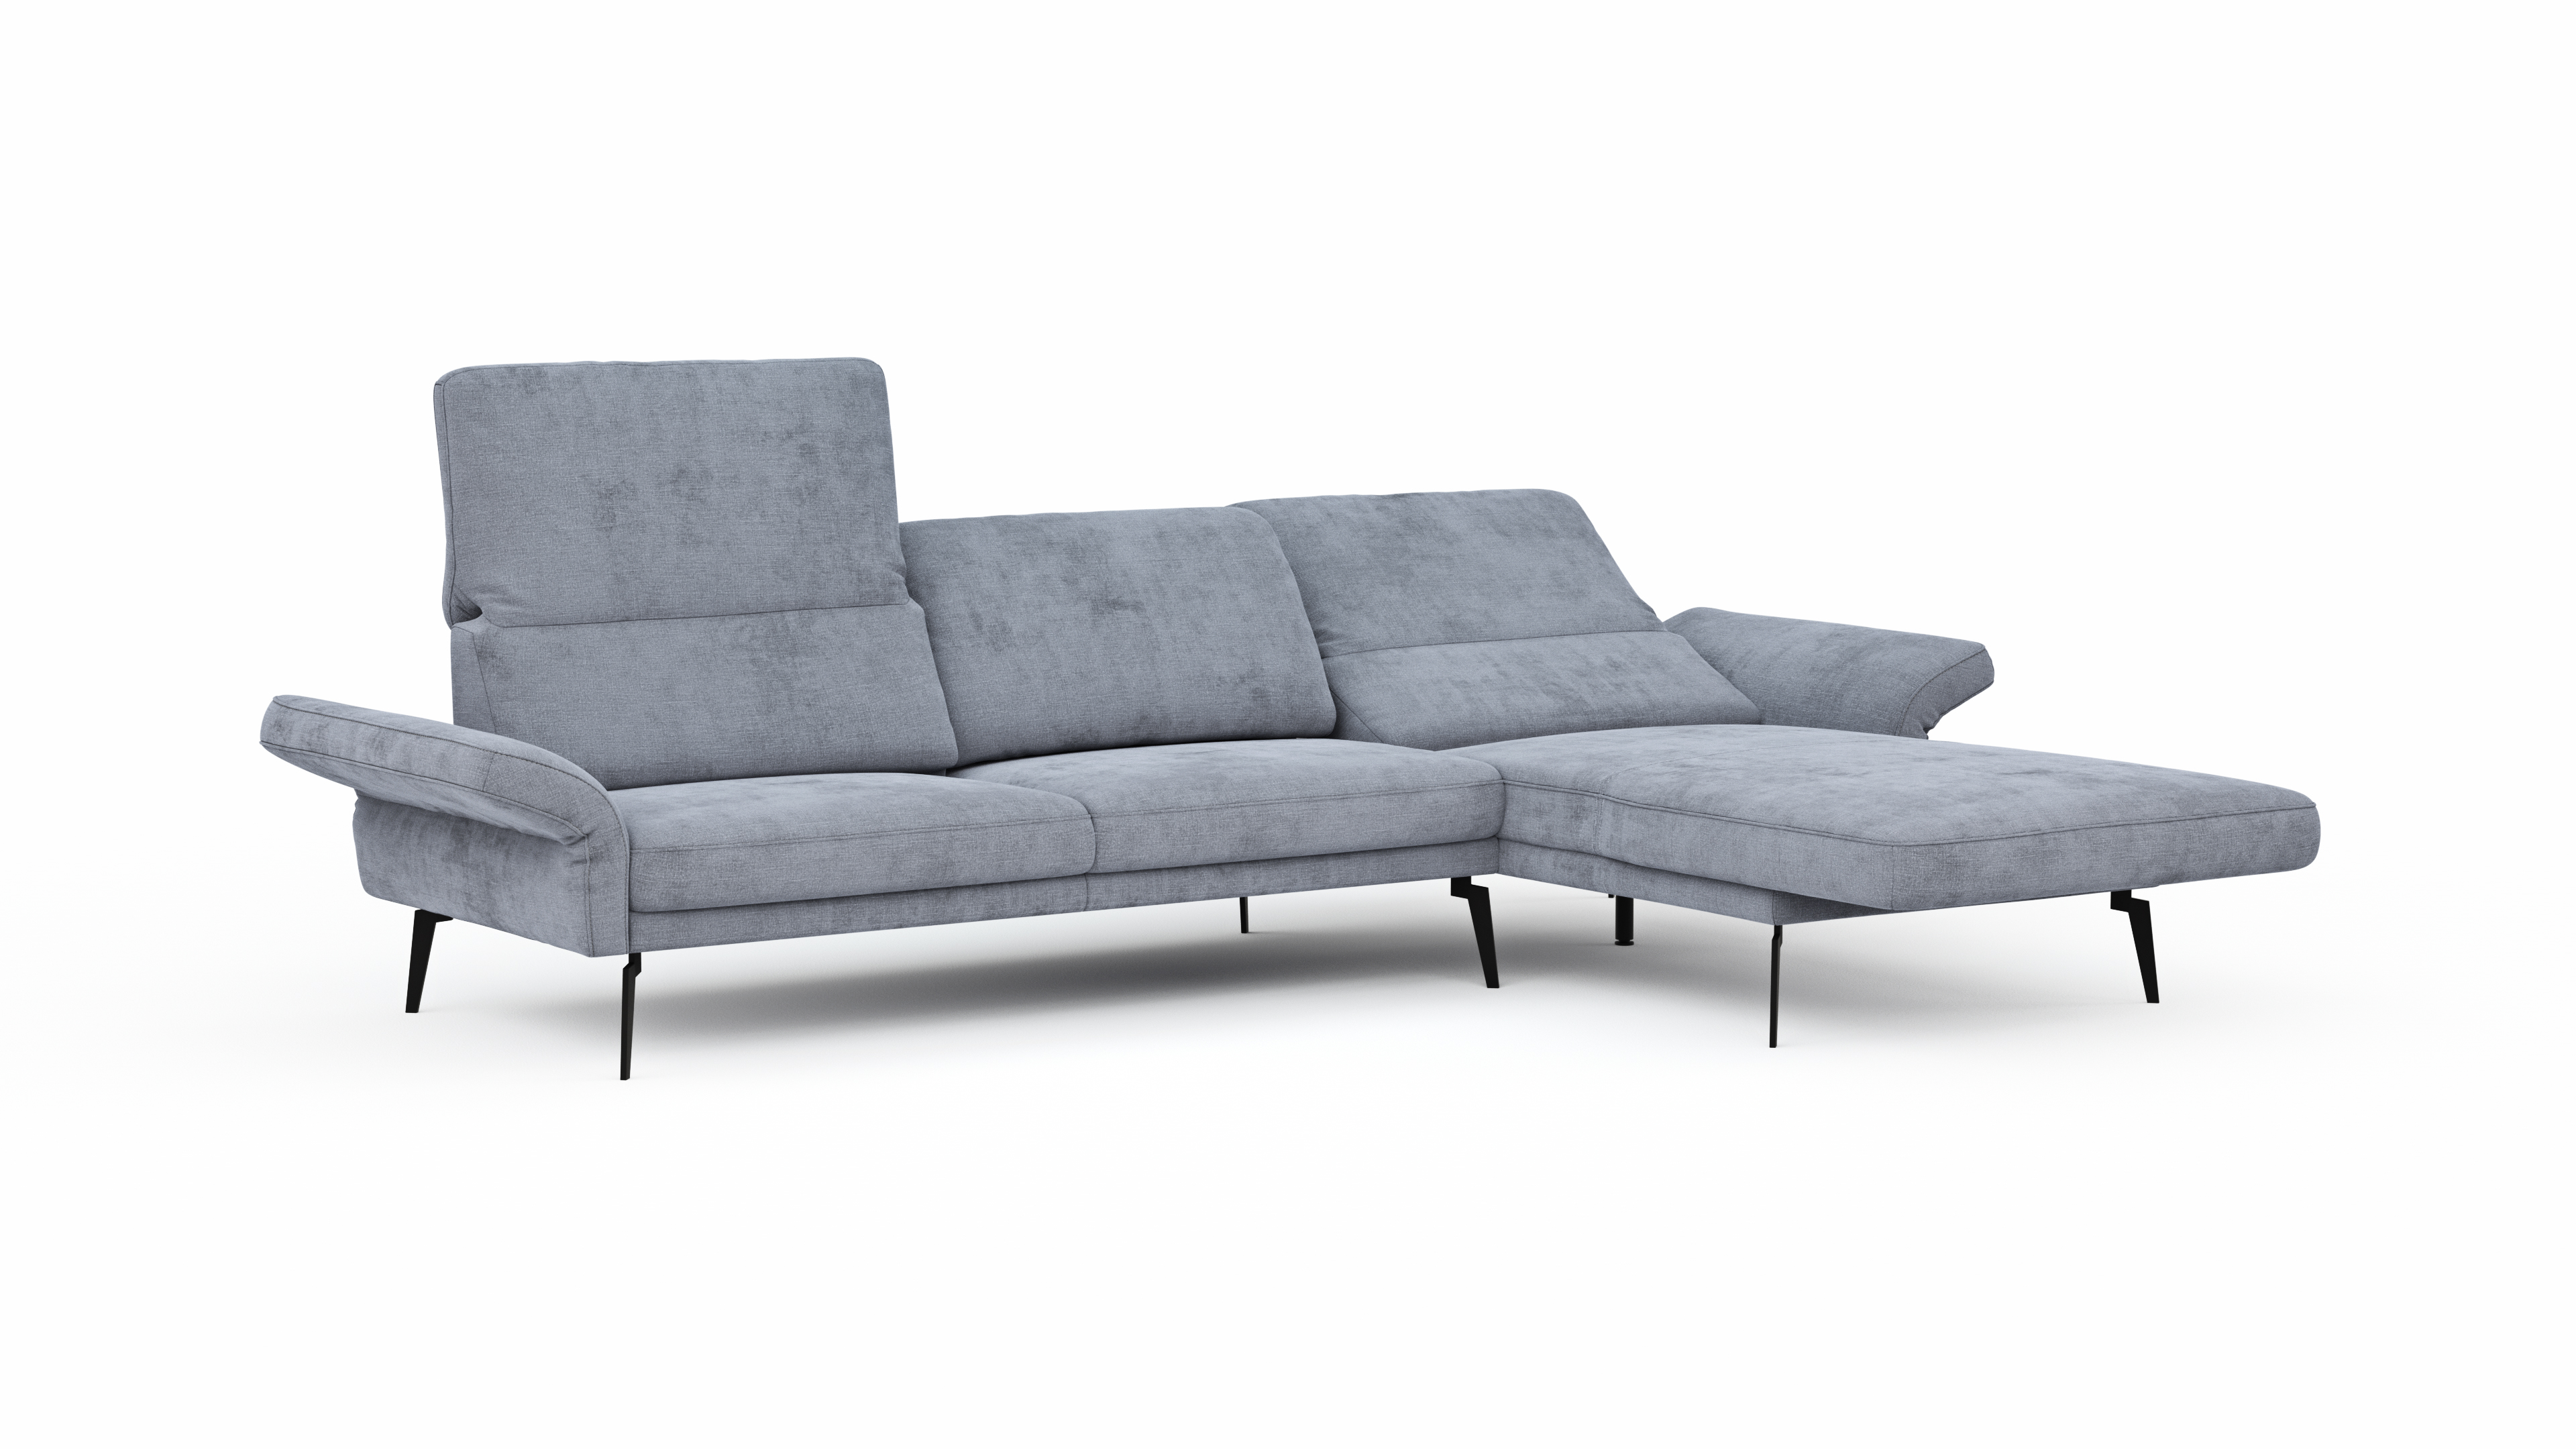 Global Select Ecksofa Estrela freisteller 4 104244 | Homepoet